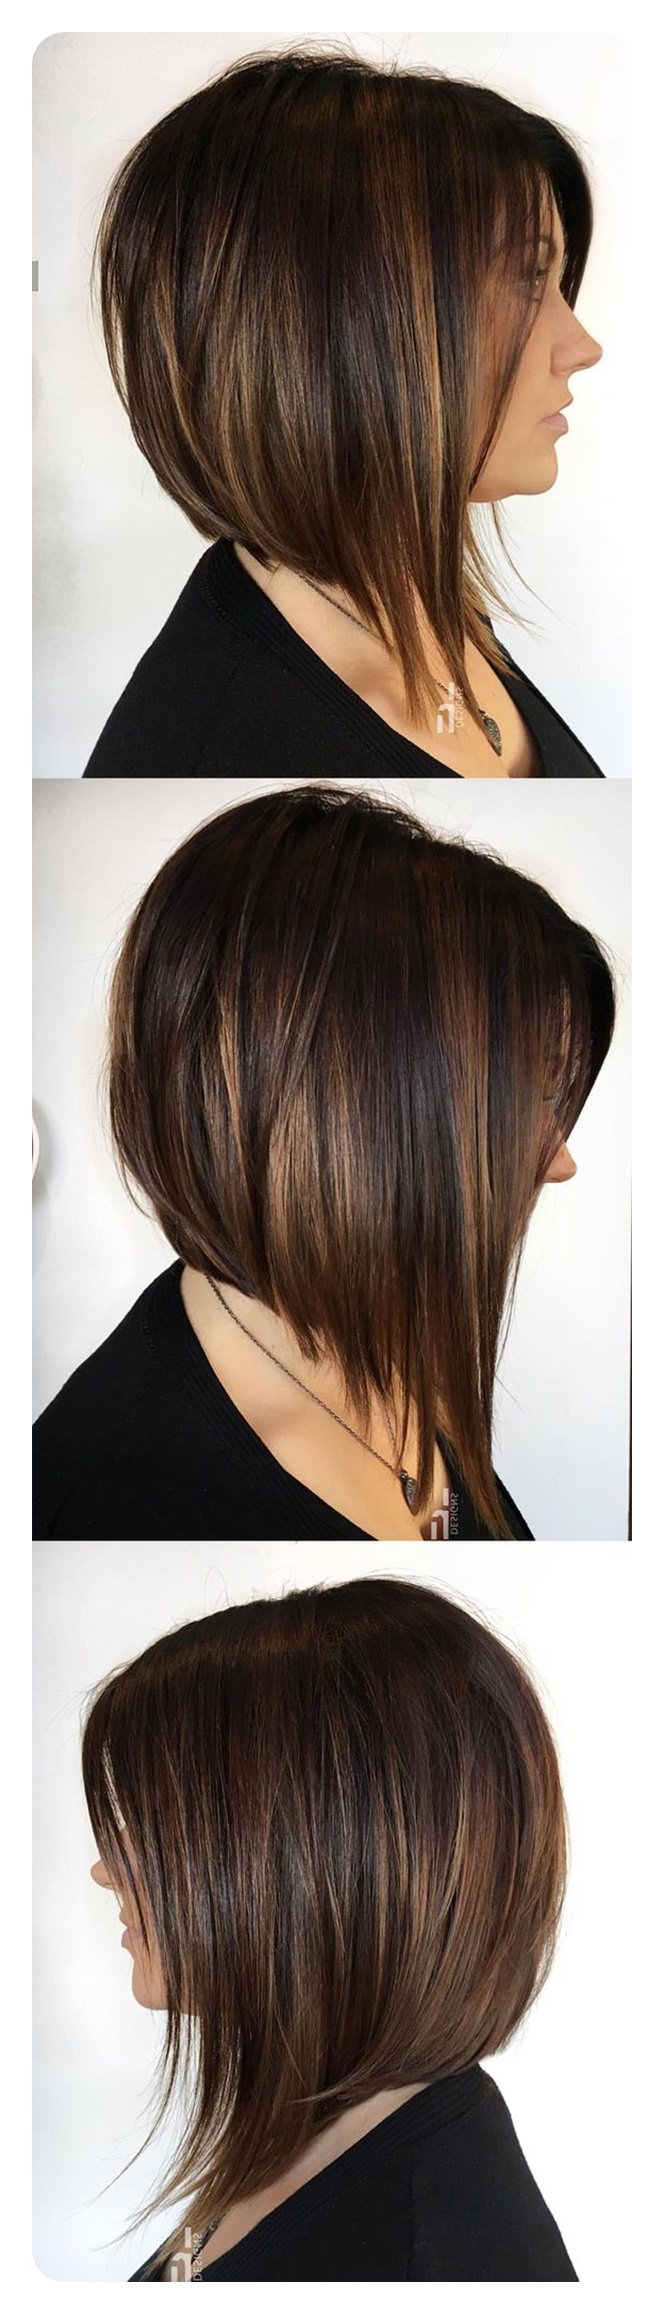 92 Layered Inverted Bob Hairstyles That You Should Try With Regard To Widely Used Black Angled Bob Hairstyles With Shaggy Layers (View 17 of 20)